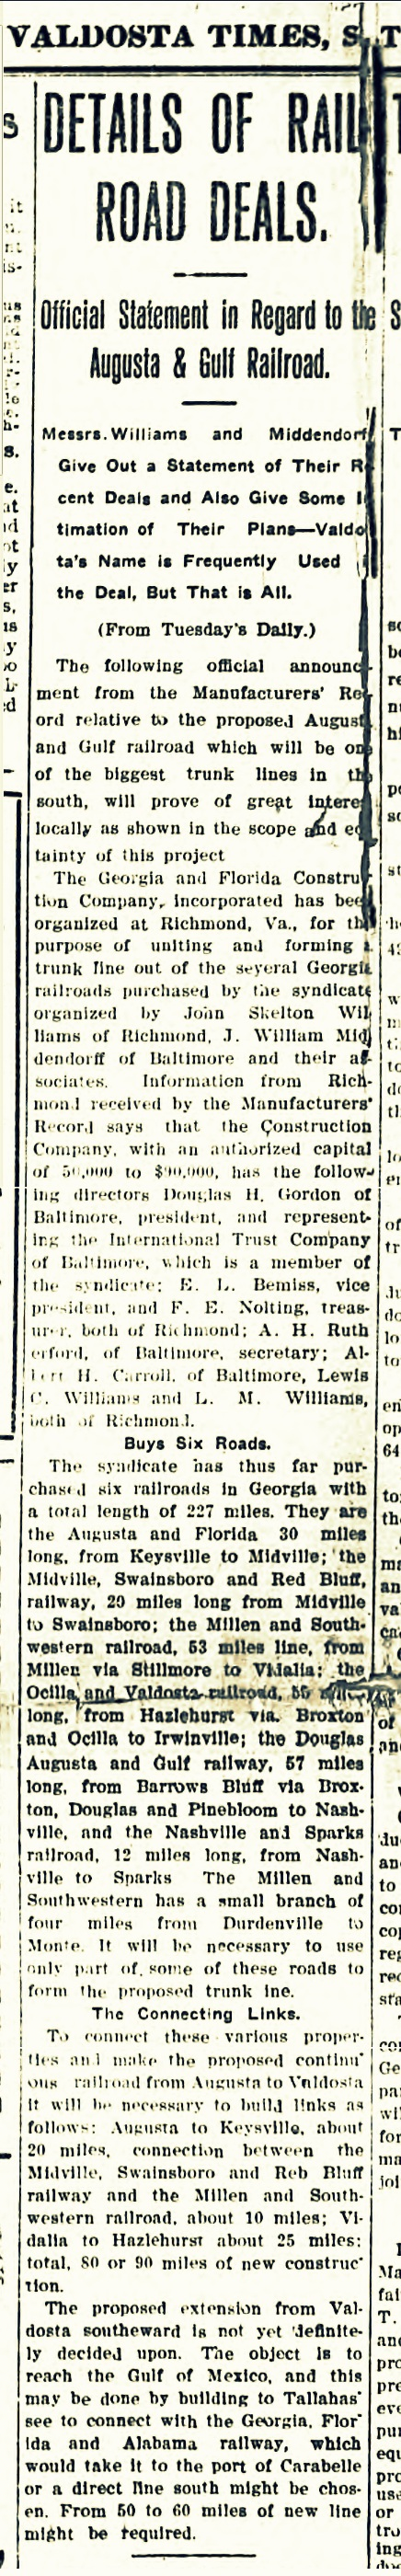 March 10, 1906 The Valdosta Times reports on the organization of the Georgia and Florida Construction Company by John Skelton Williams.